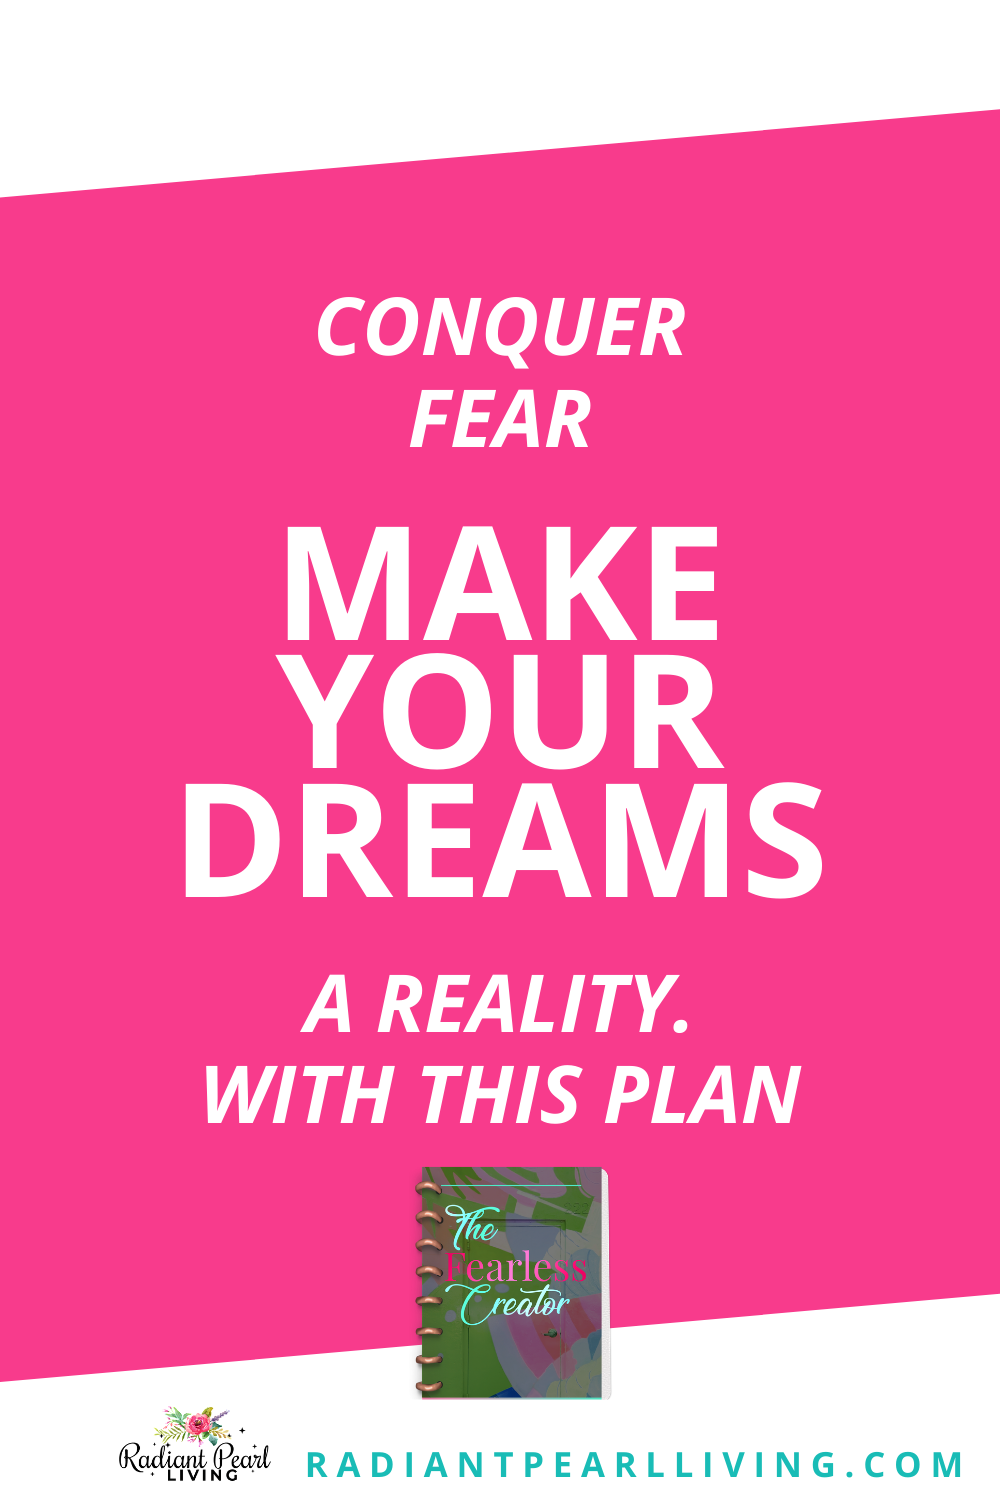 Explore how you can get rid of overwhelm and begin planning effectively. You will conquer your fear to make your dreams a reality already!